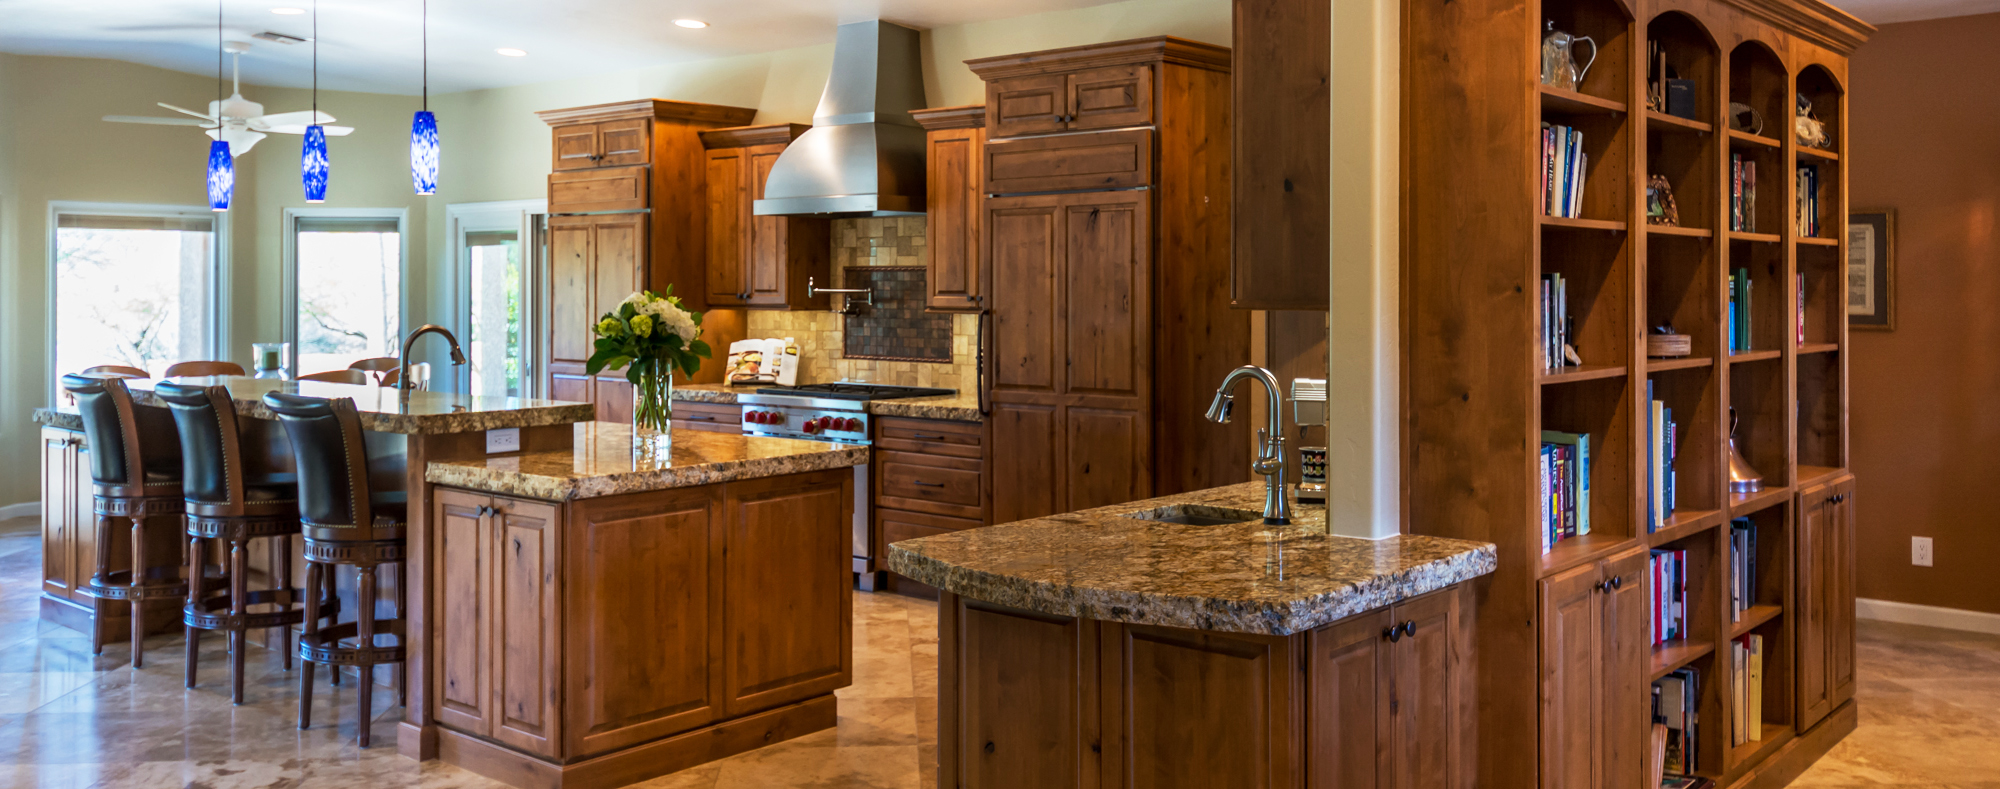 Bon Canyon Cabinetry | Kitchen Design, Bath Remodel, U0026 Cabinets Tucson AZ